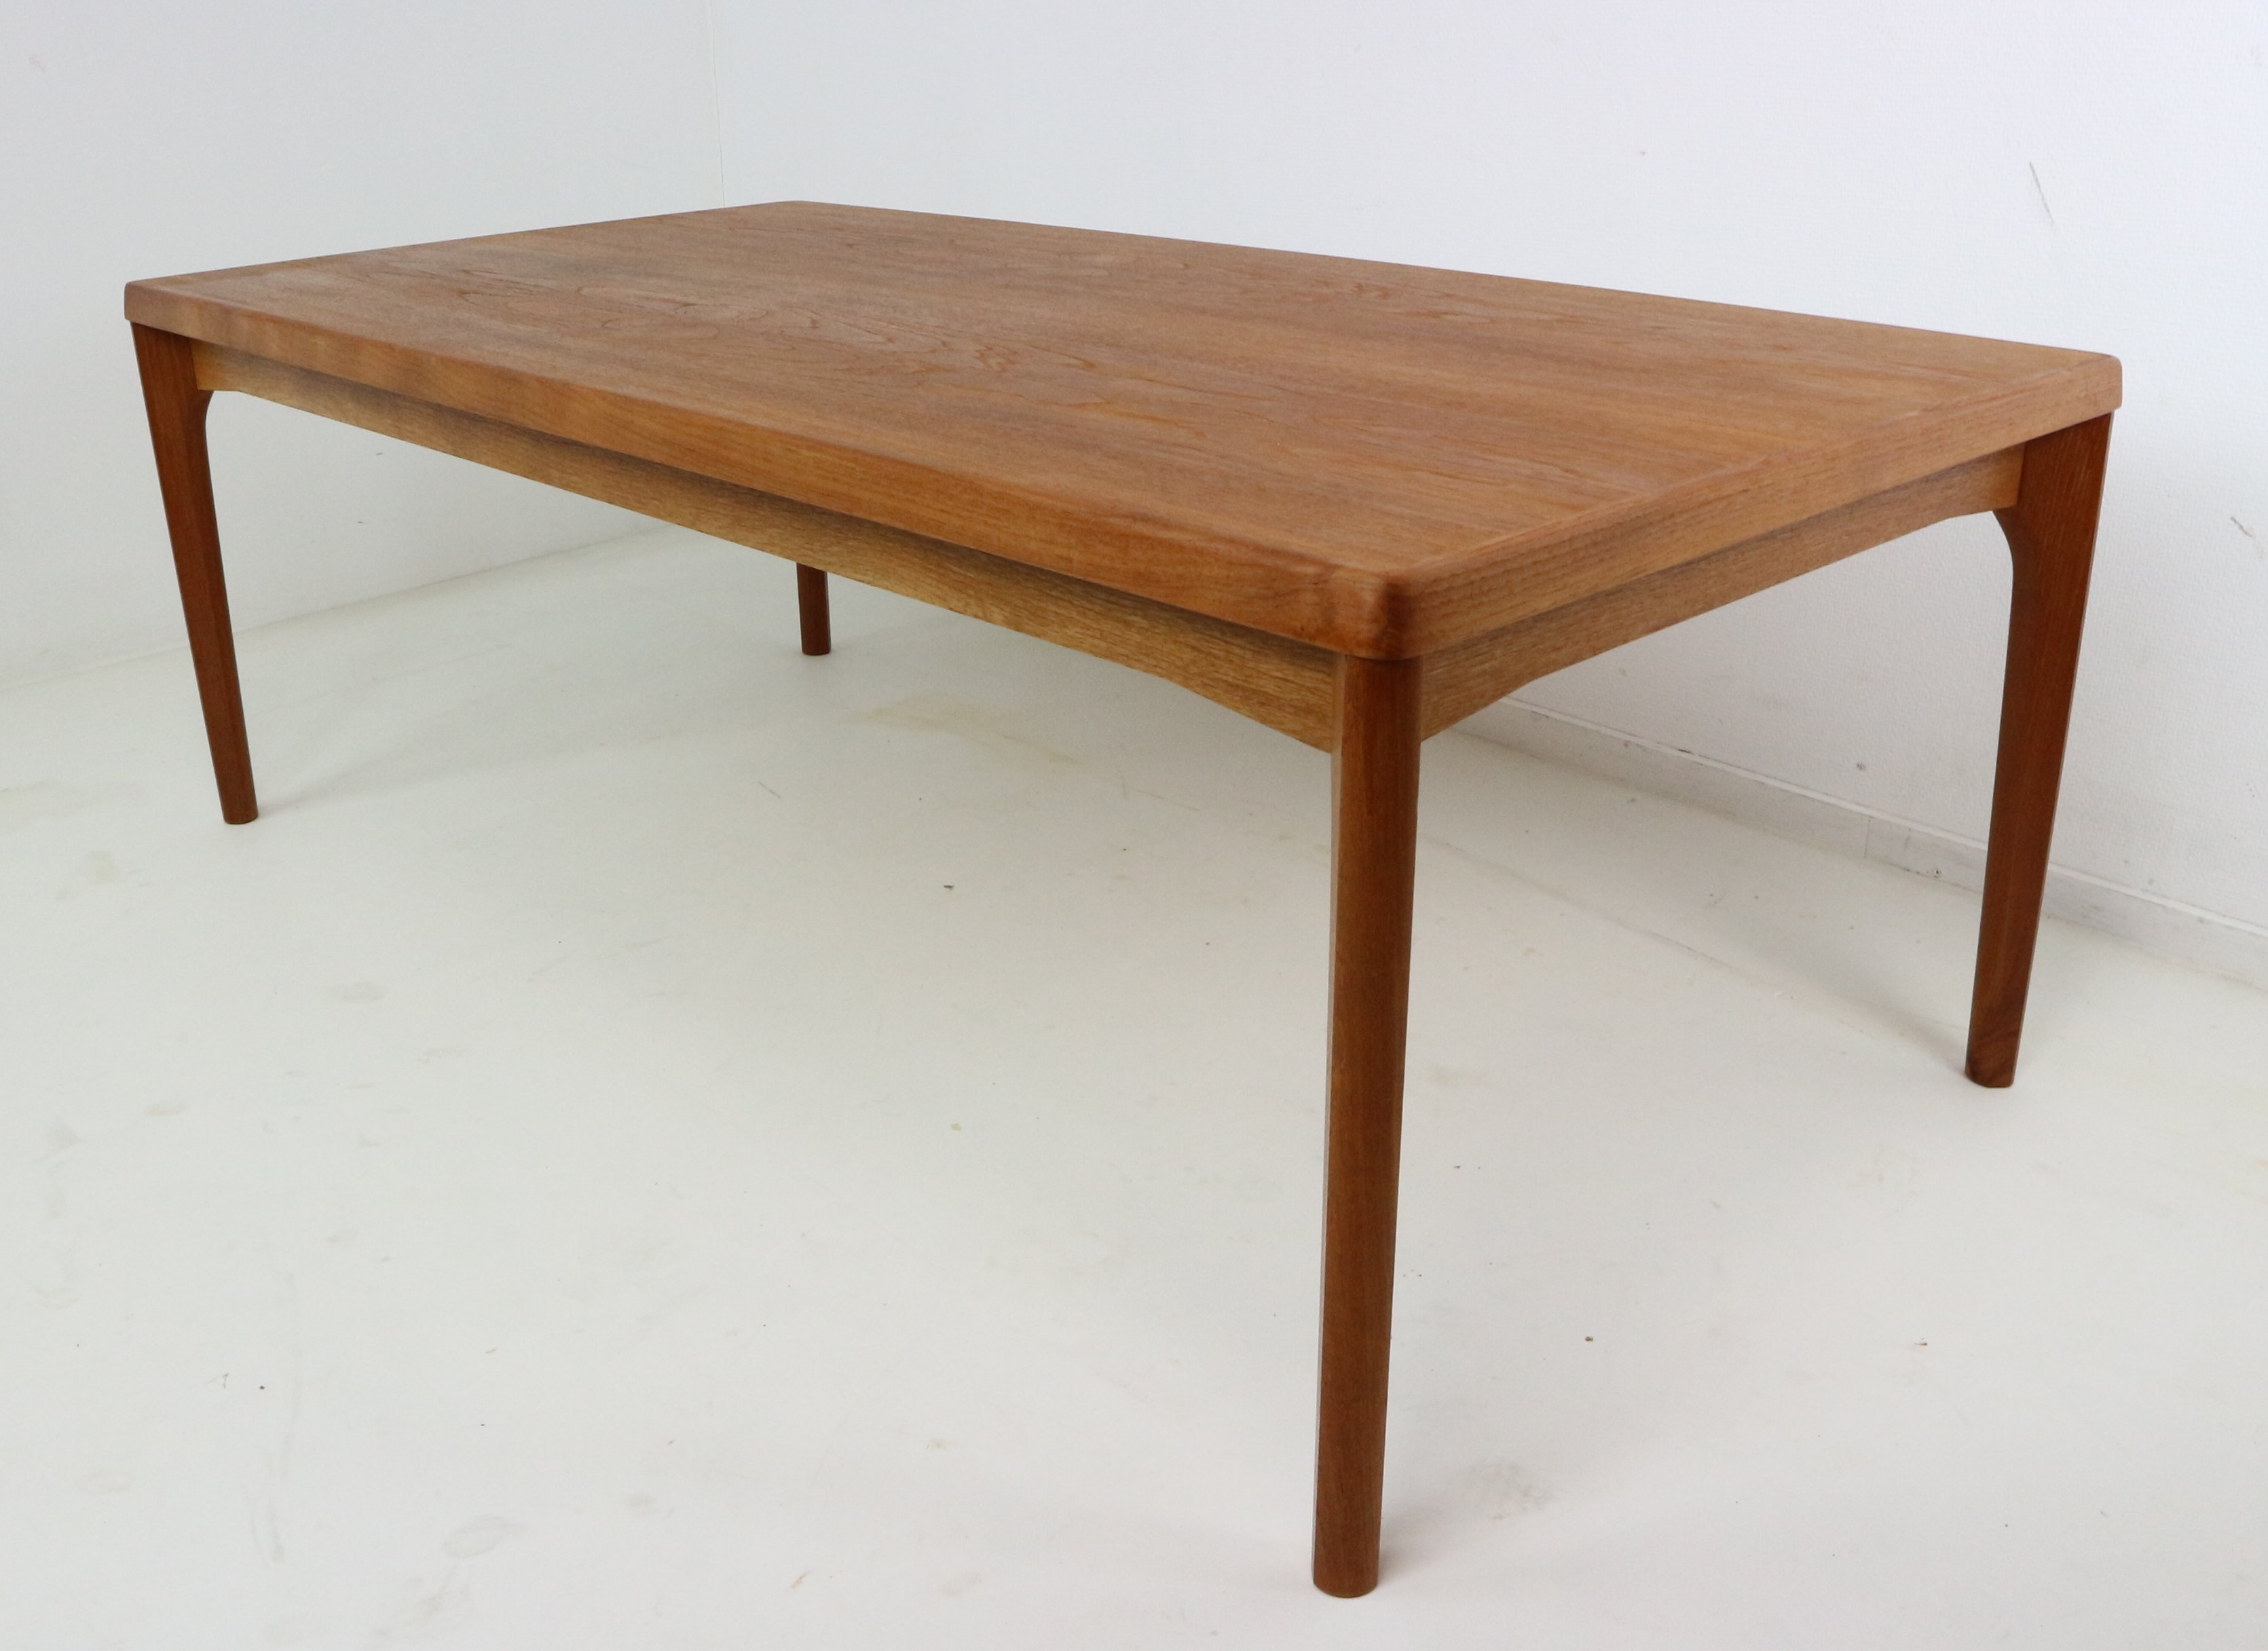 Danish Design Coffee Table By Henning Kjaernulf For Vejle Stole, 1960s